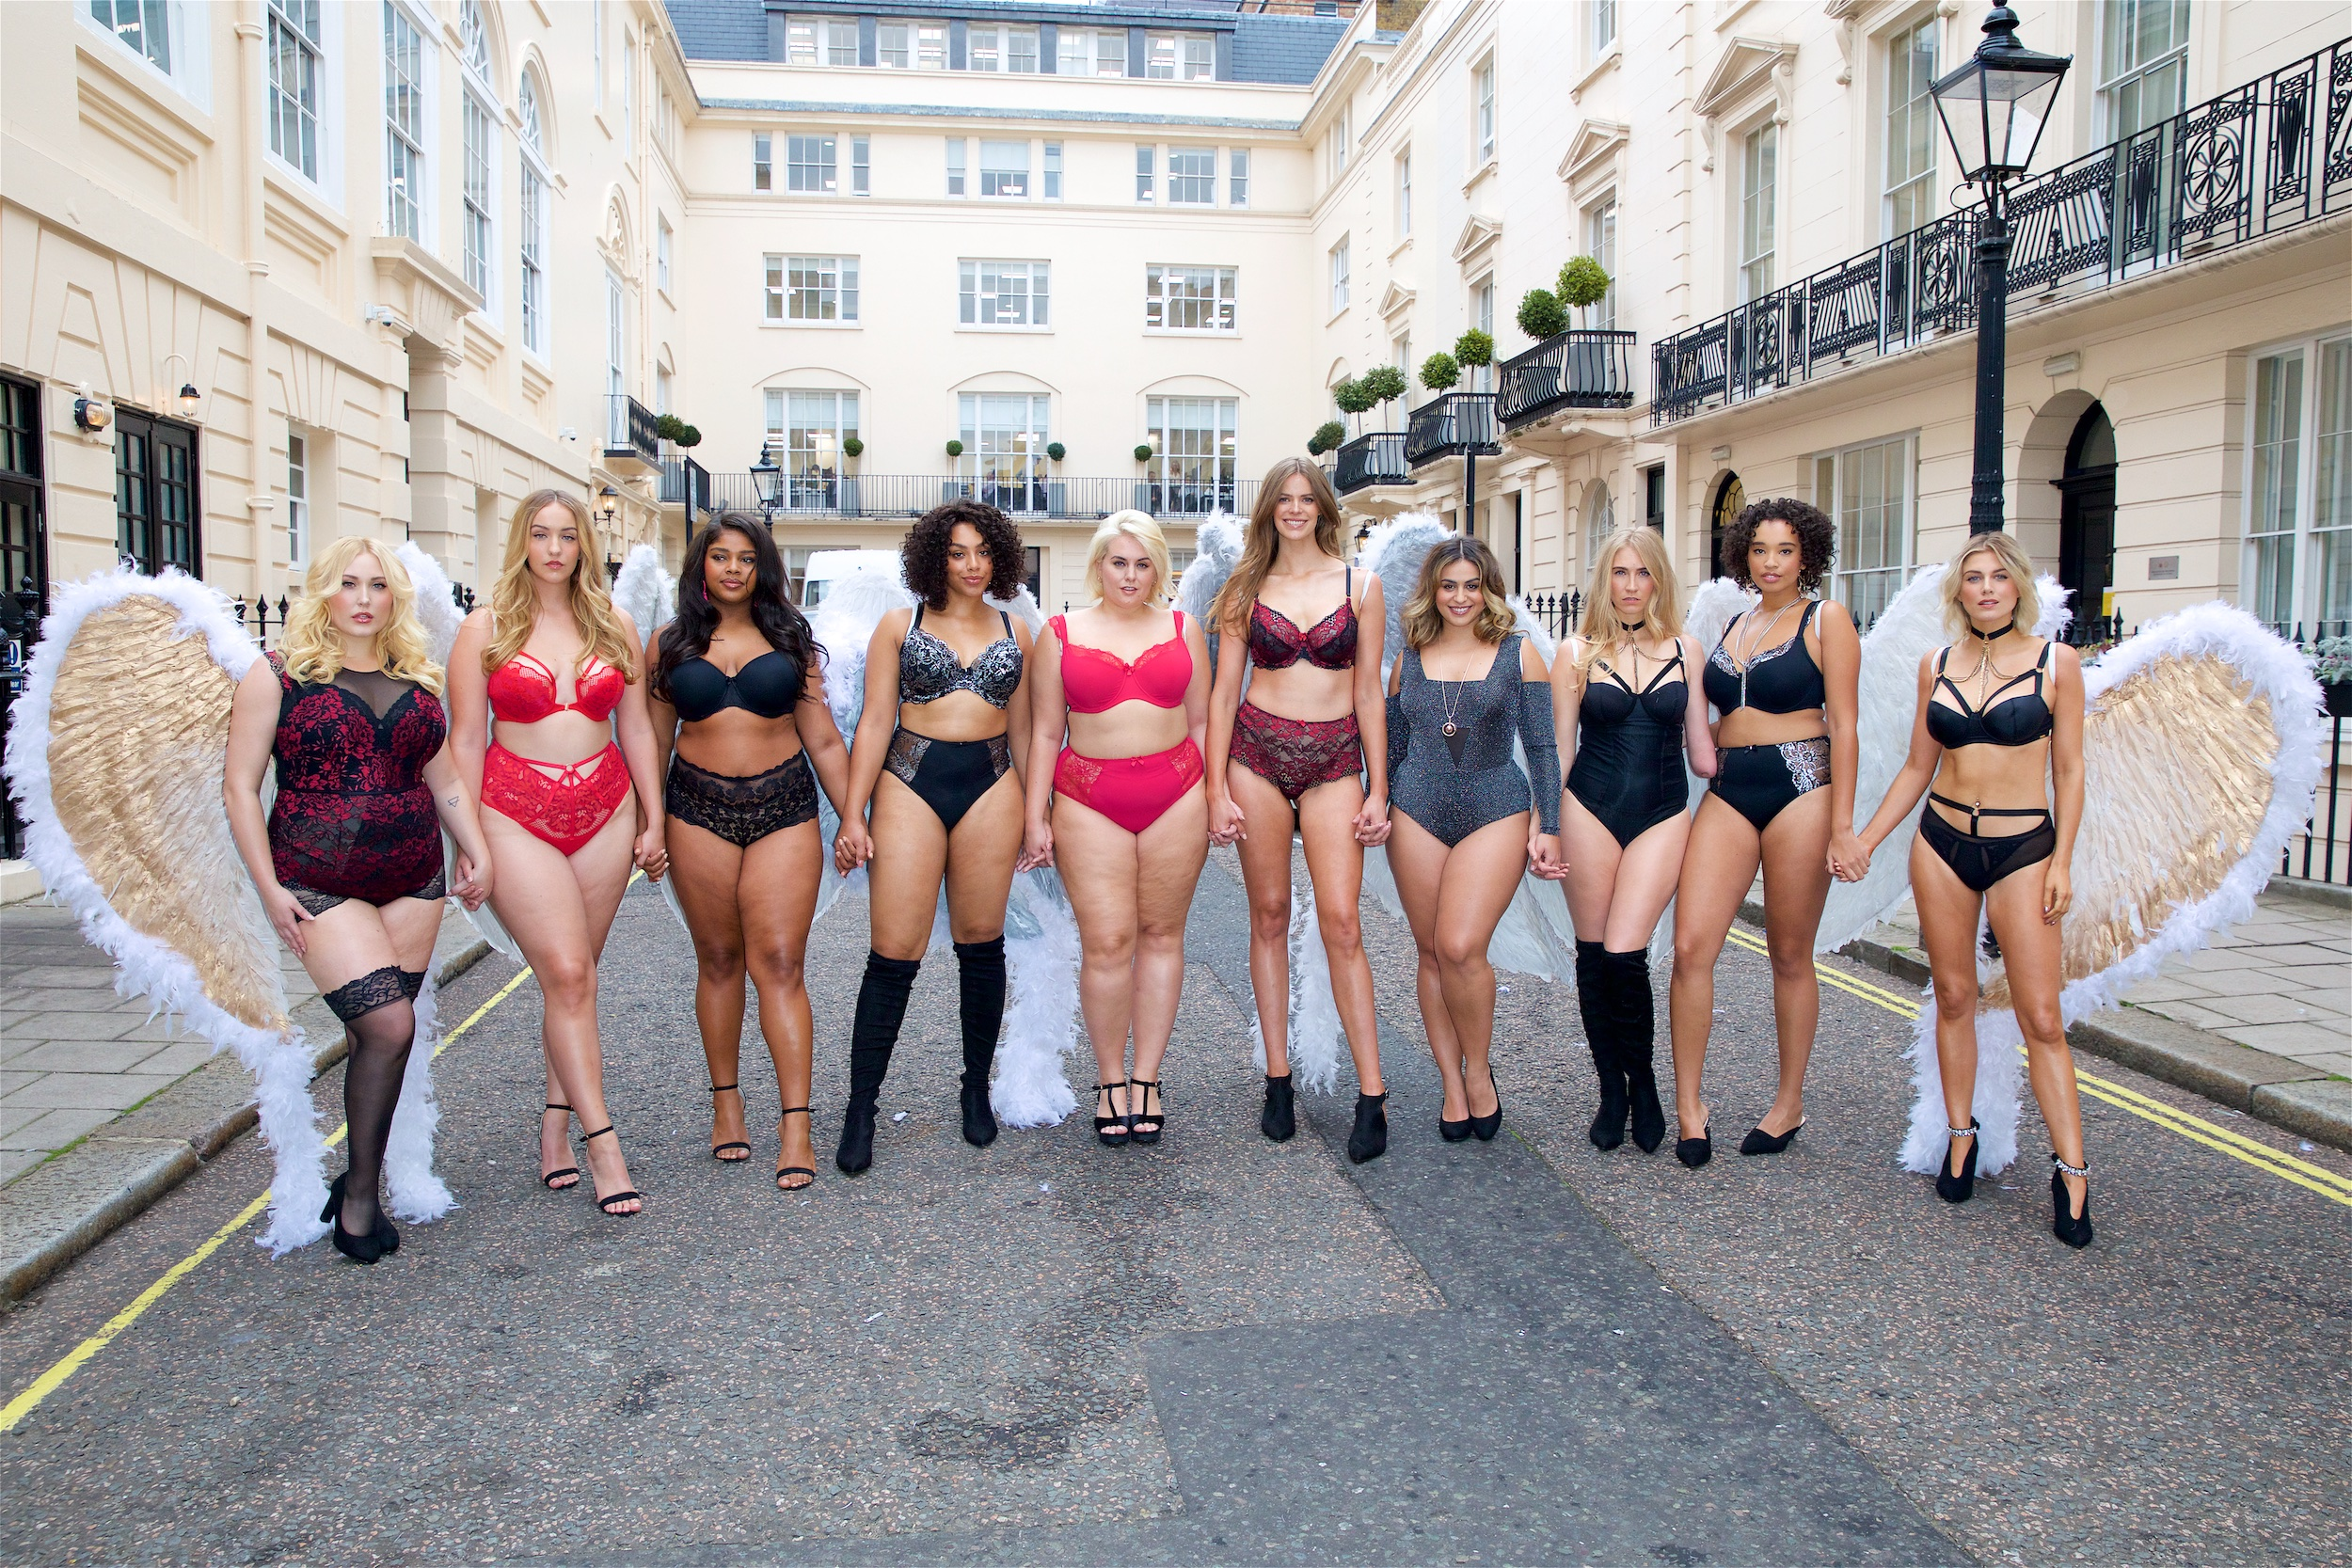 Hayley Hasselhoff, Joann Van Den Herik, Nahuane, Danielle, Felicity Hayward, Robyn Lawley, Ayesha, Kelly Knox, Anais and Ashley James, who walked in the 'We're All Angels' lingerie show